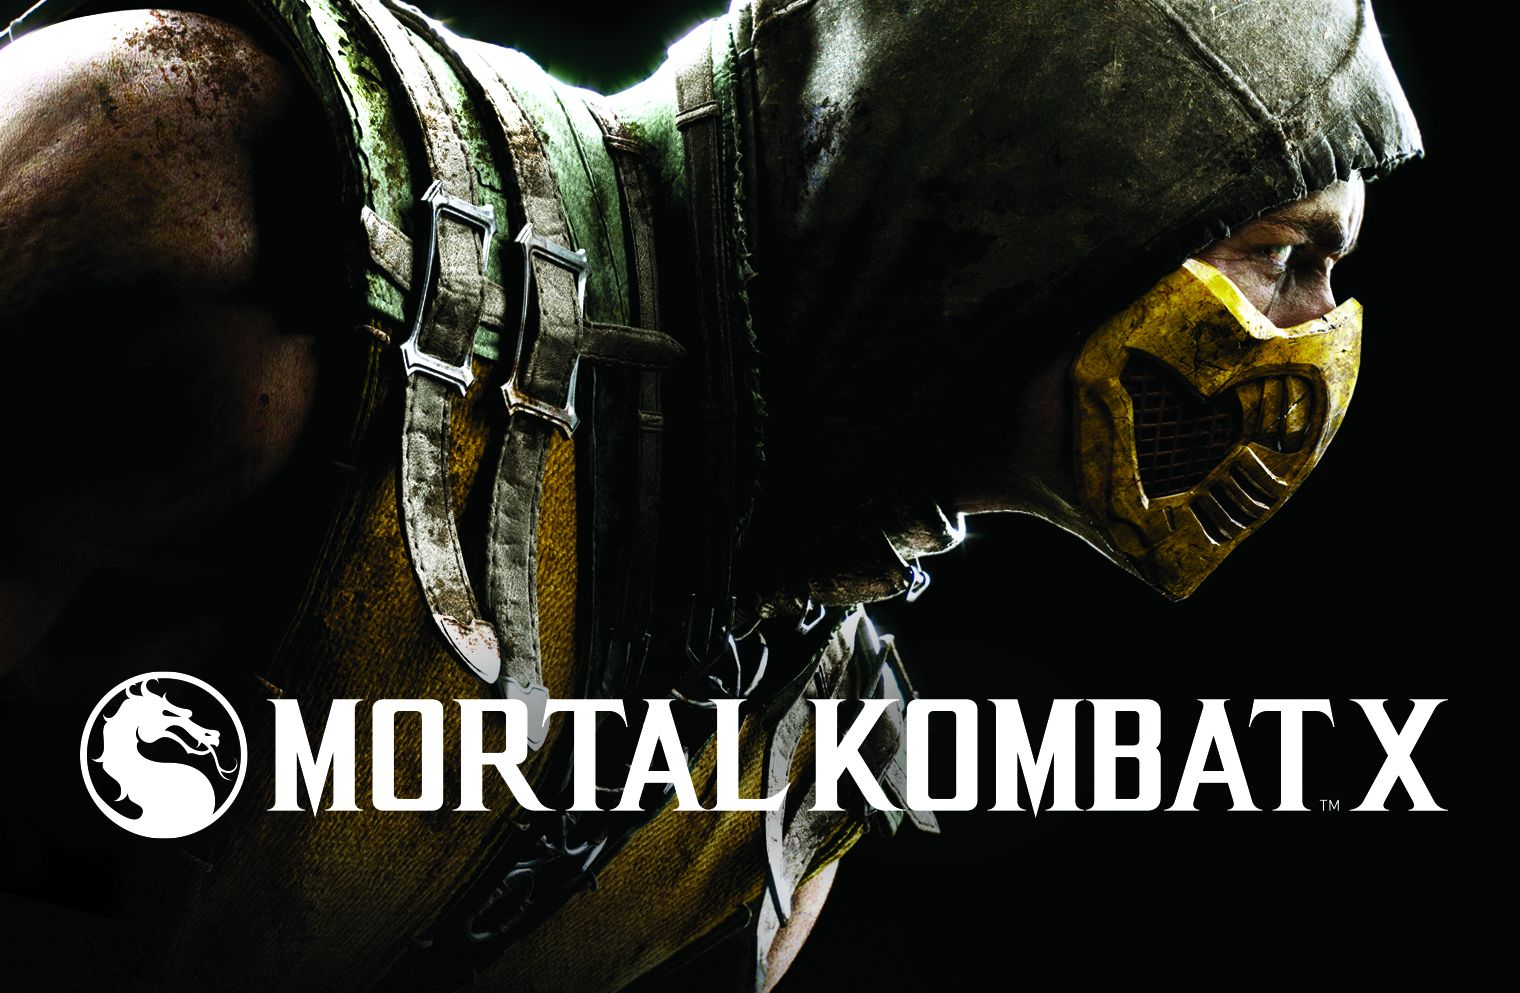 Mortal Kombat X Gets Awesome Key Art and Box Art for PS4, Xbox One